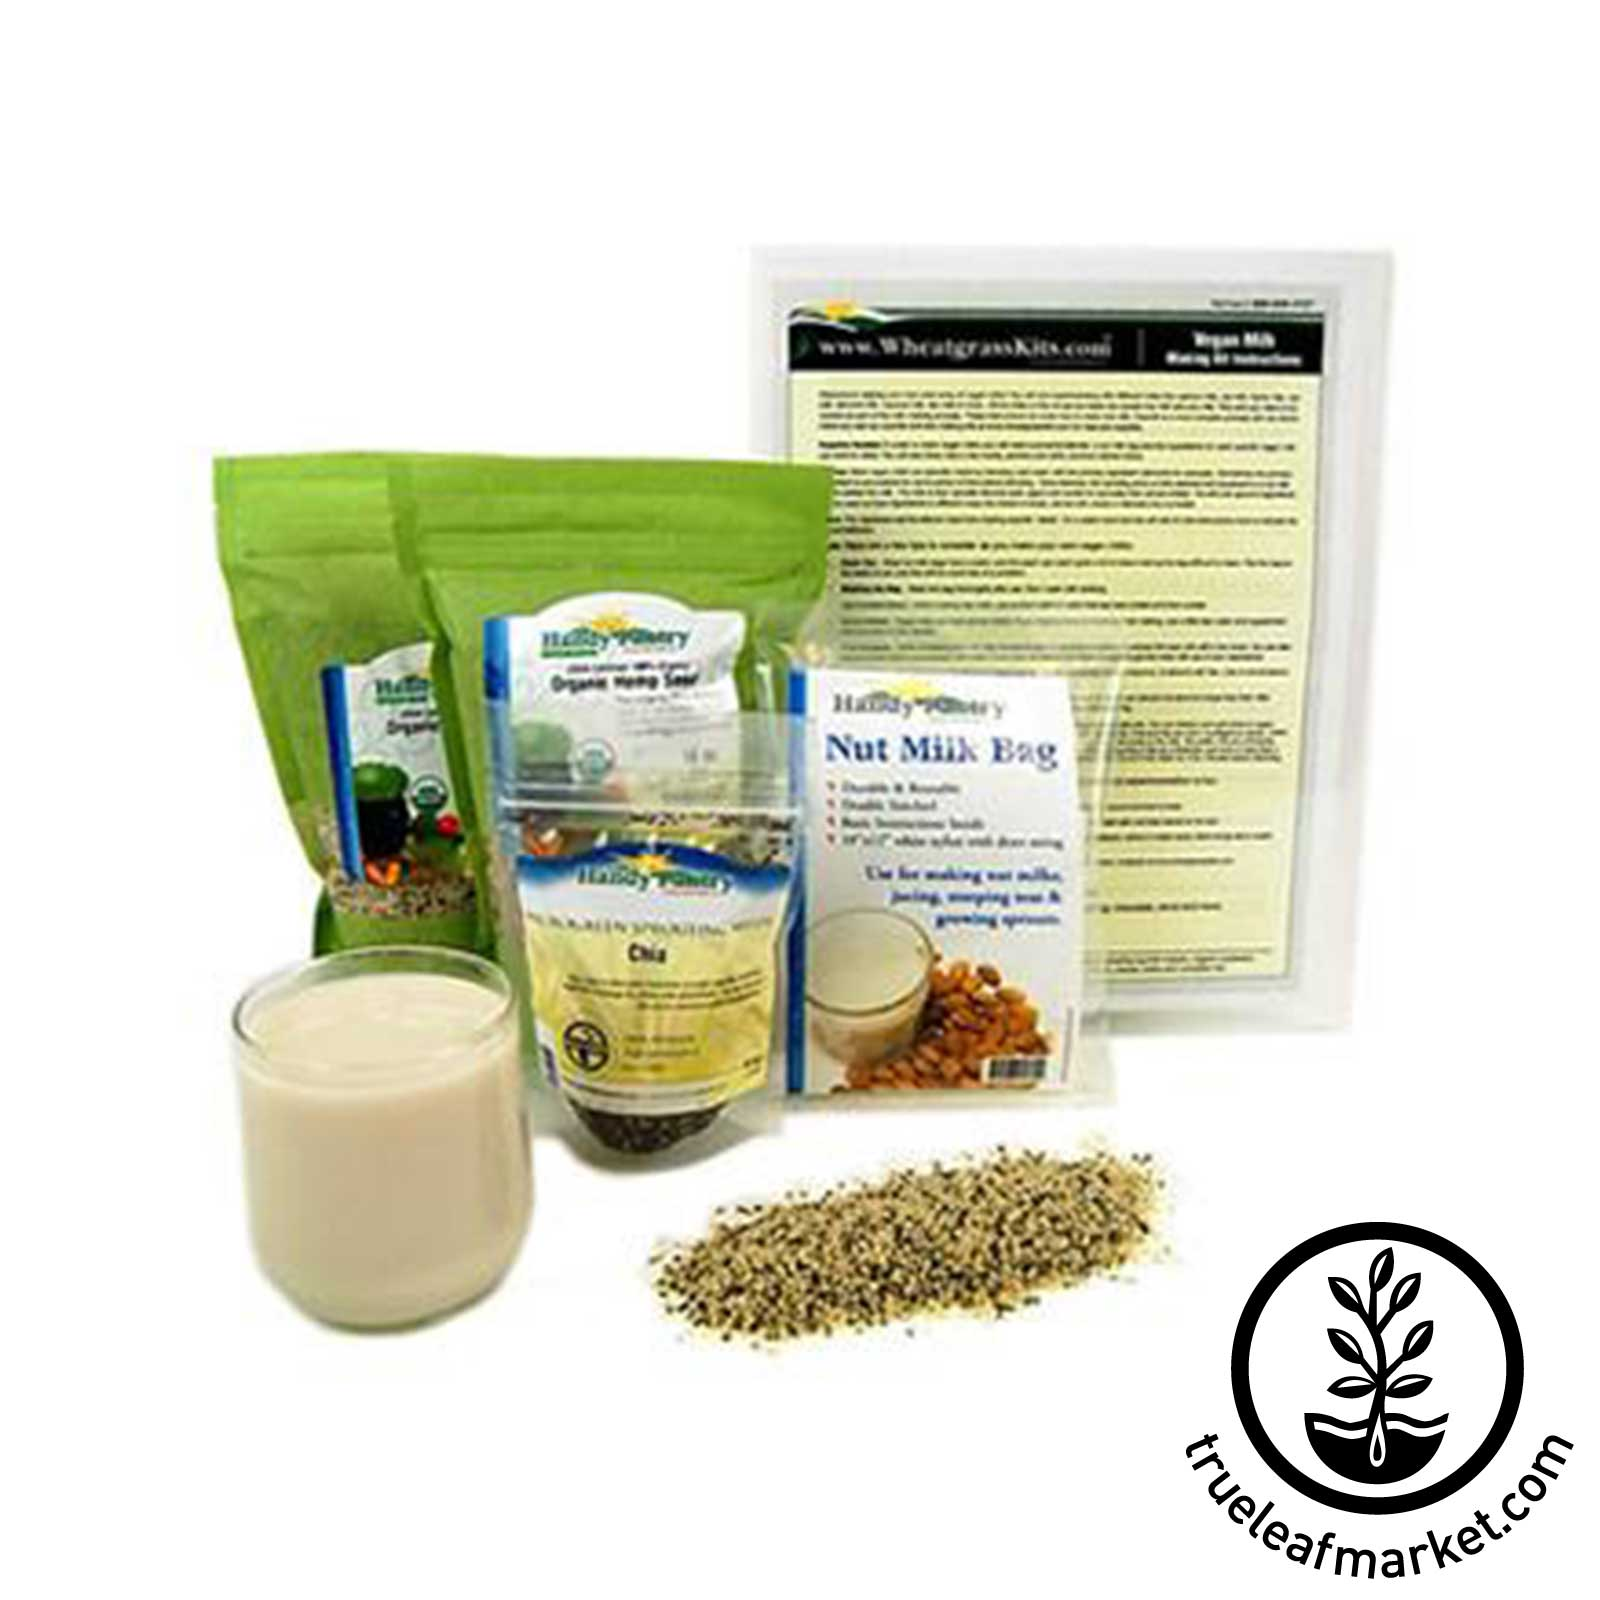 Organic Hemp Milk Kit vegan milk, nut milk, non dairy, vegan milk making, hemp milk